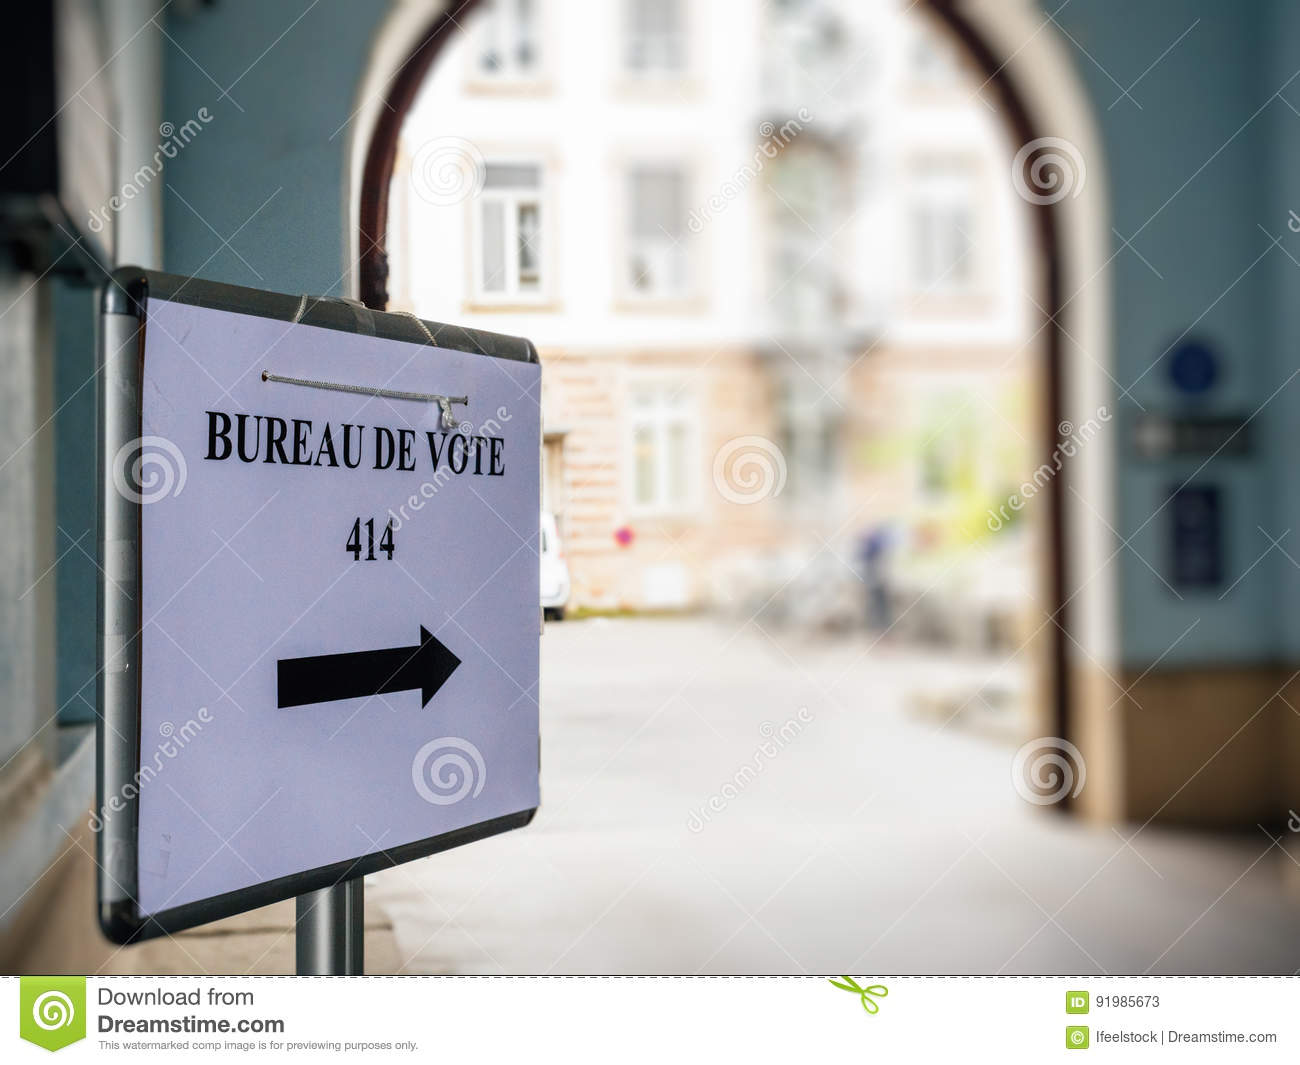 Bureau de vote sign in french city next to pooling place stock